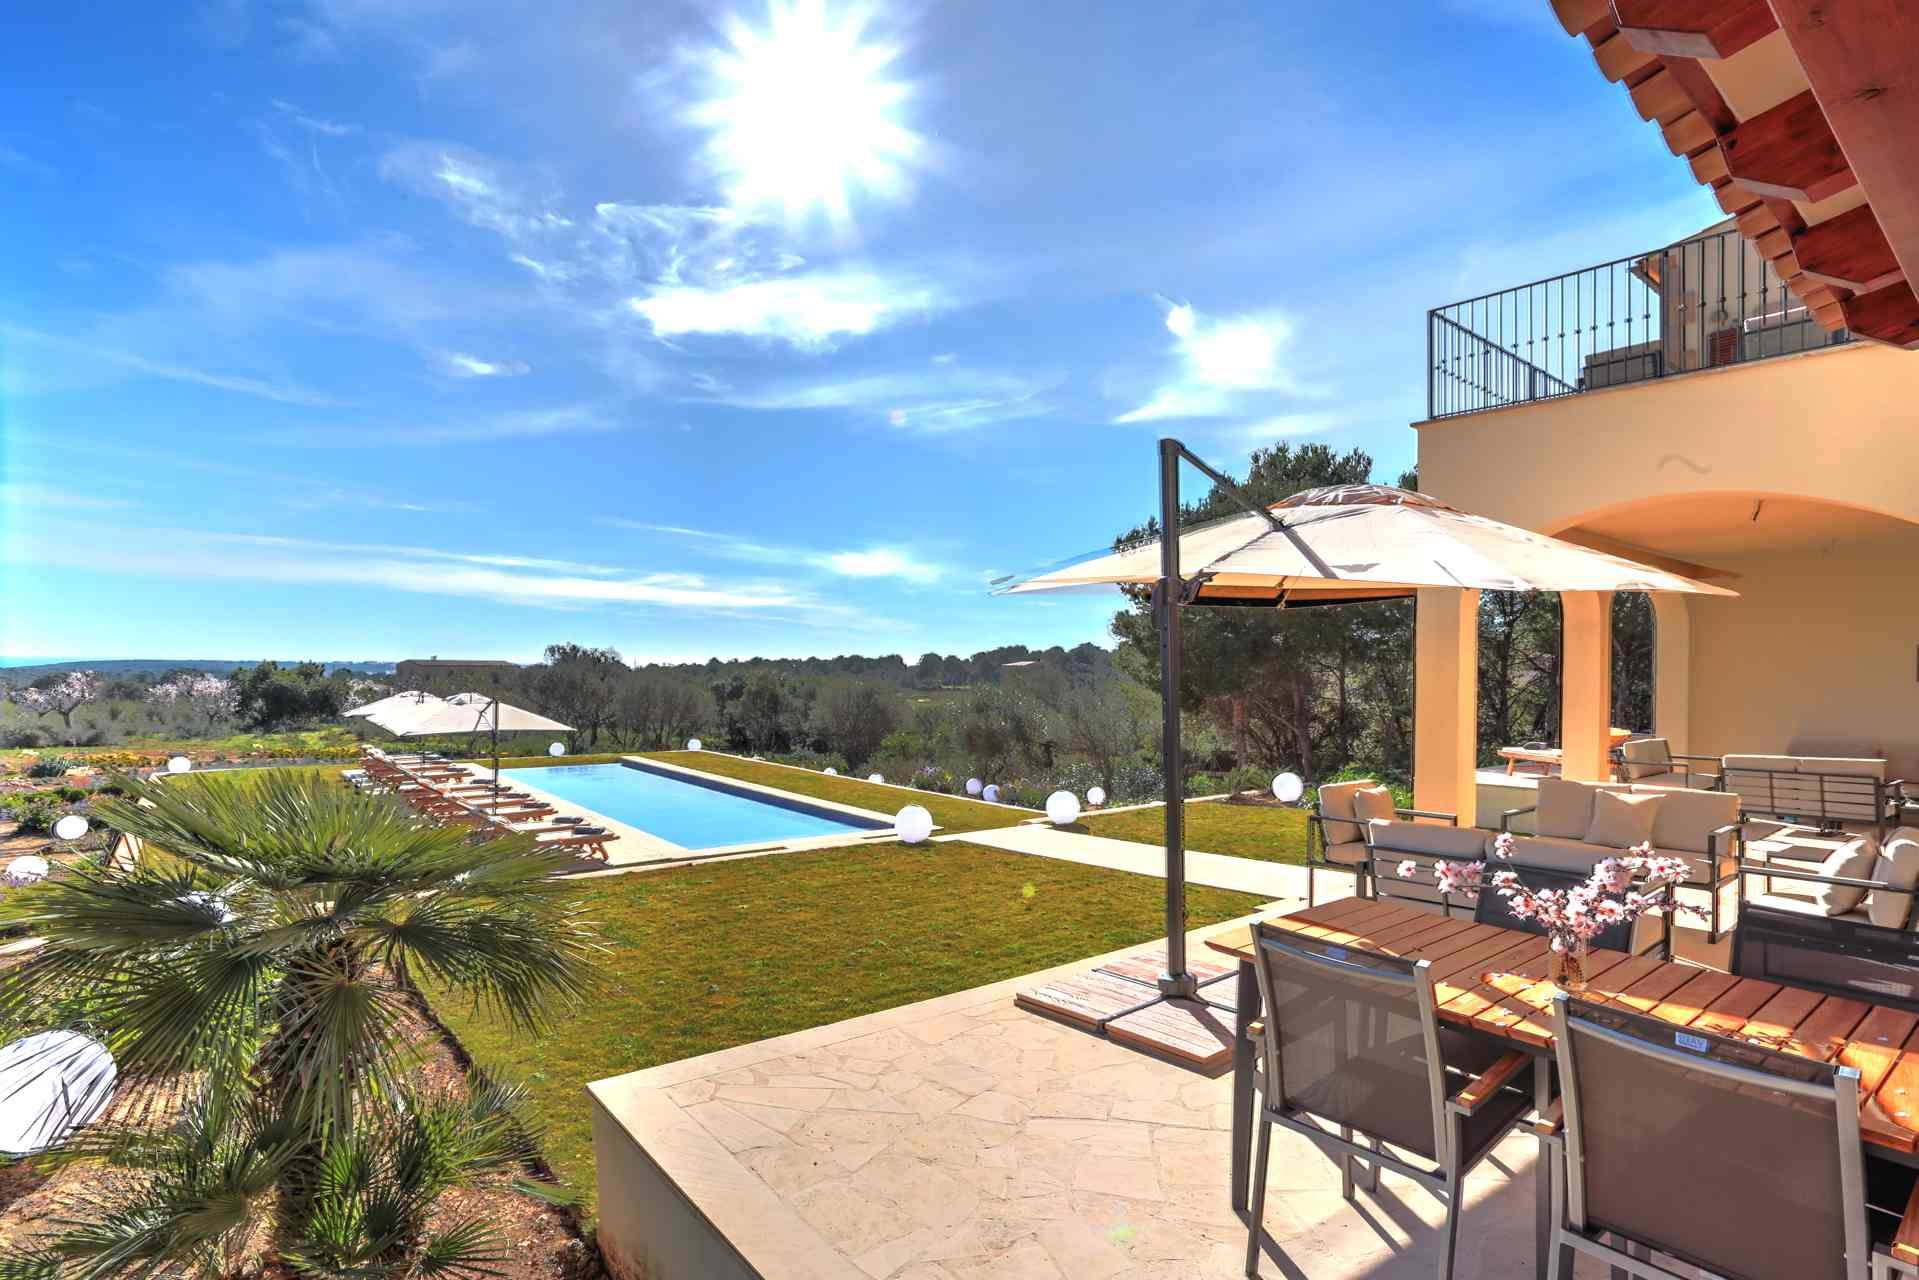 01-315 brand new luxury Finca east Mallorca Bild 6